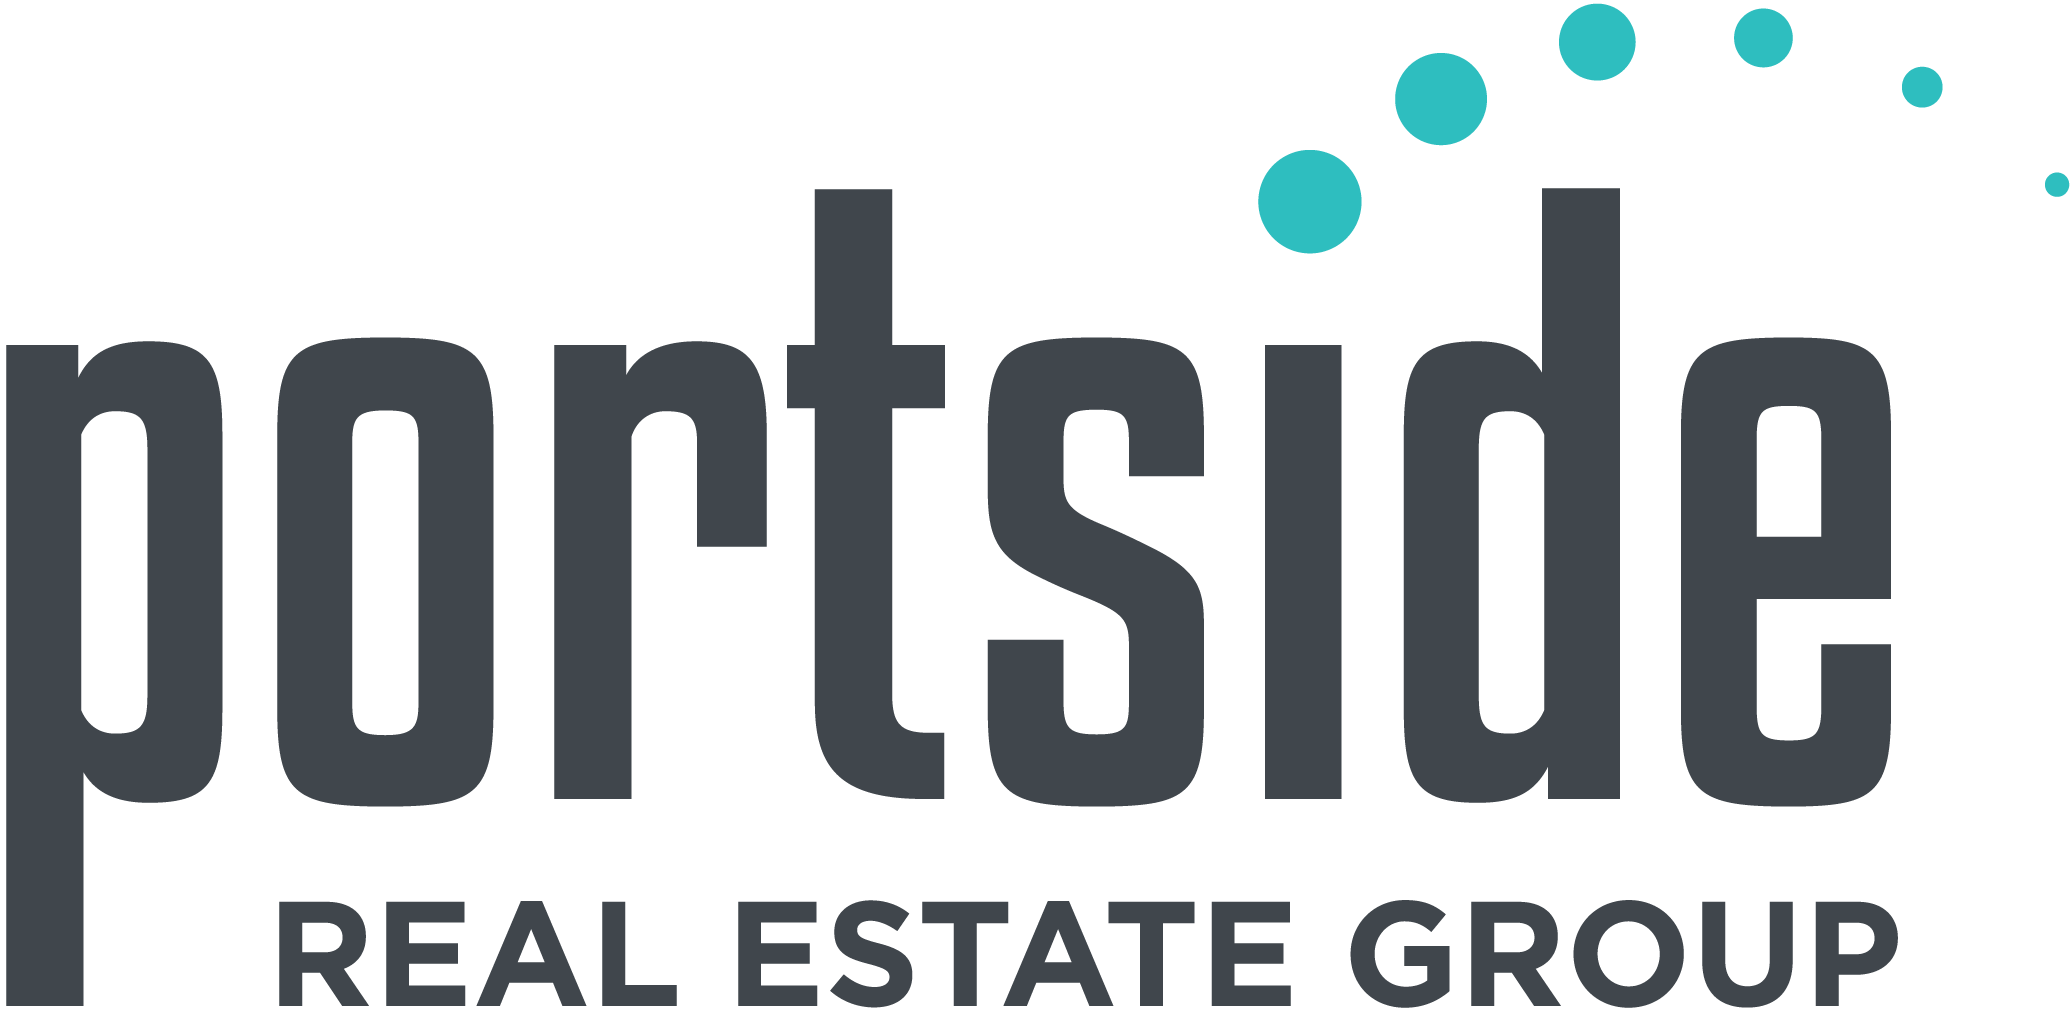 Portside Real Estate Group